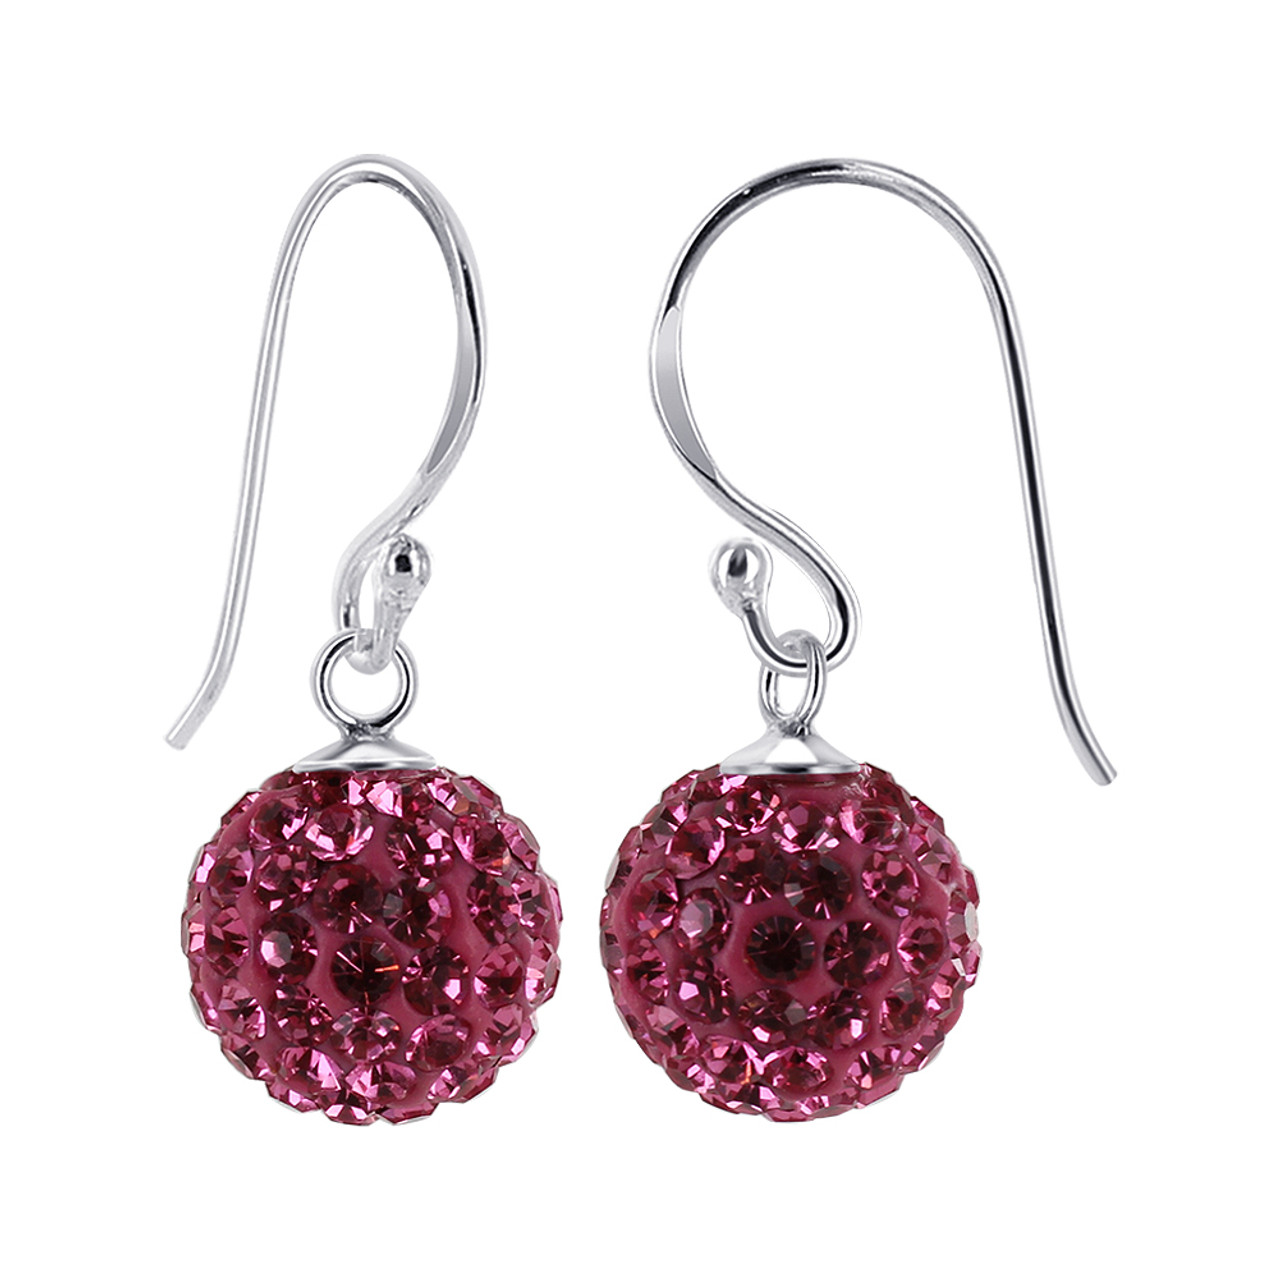 10mm Studded Pink Crystal 925 Silver Drop Earrings